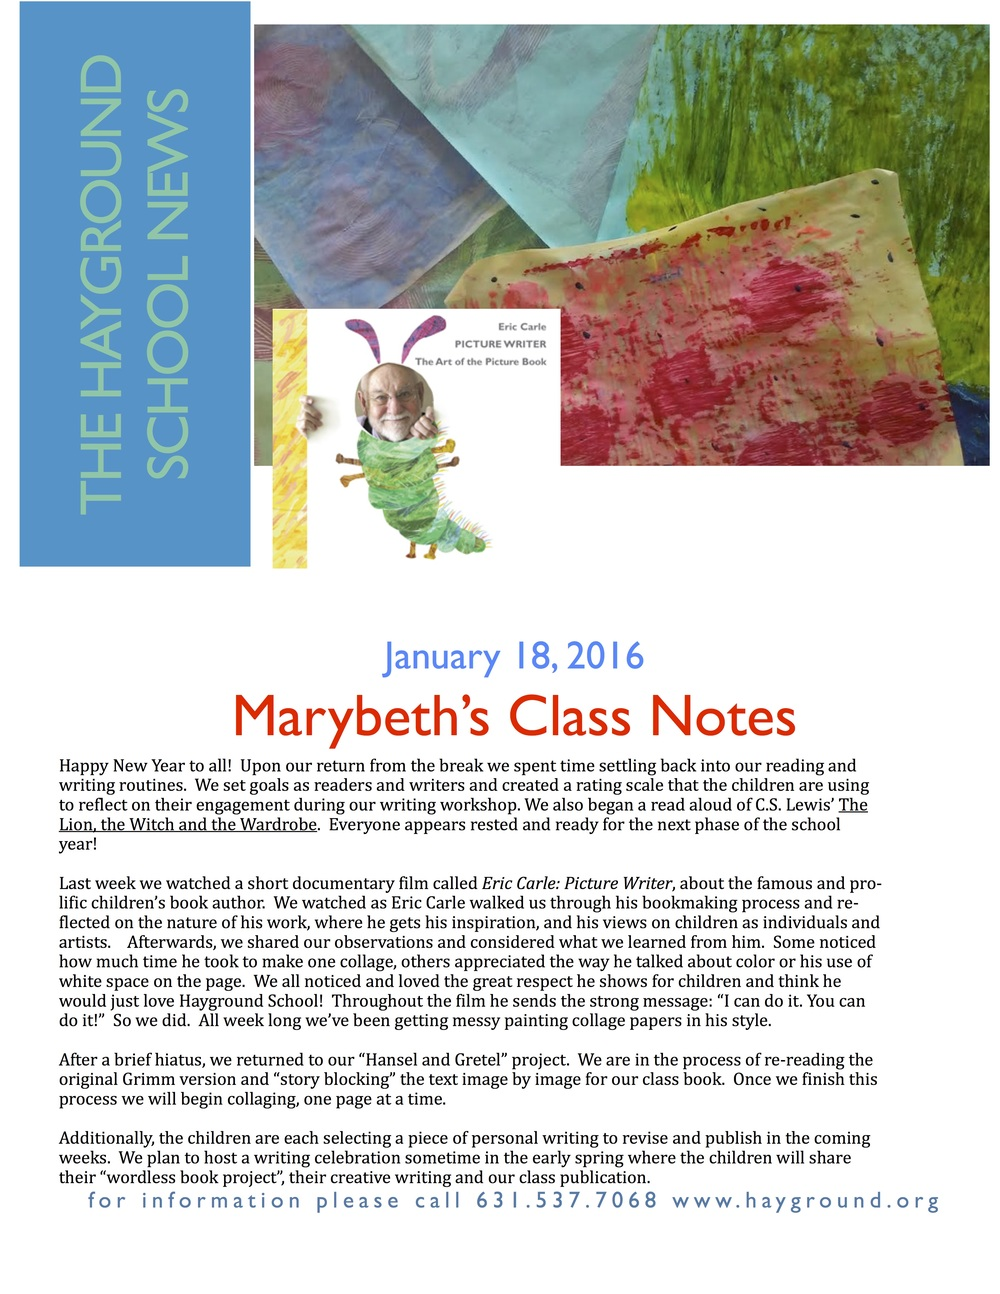 Class Notes 1-18-16 copy.jpg